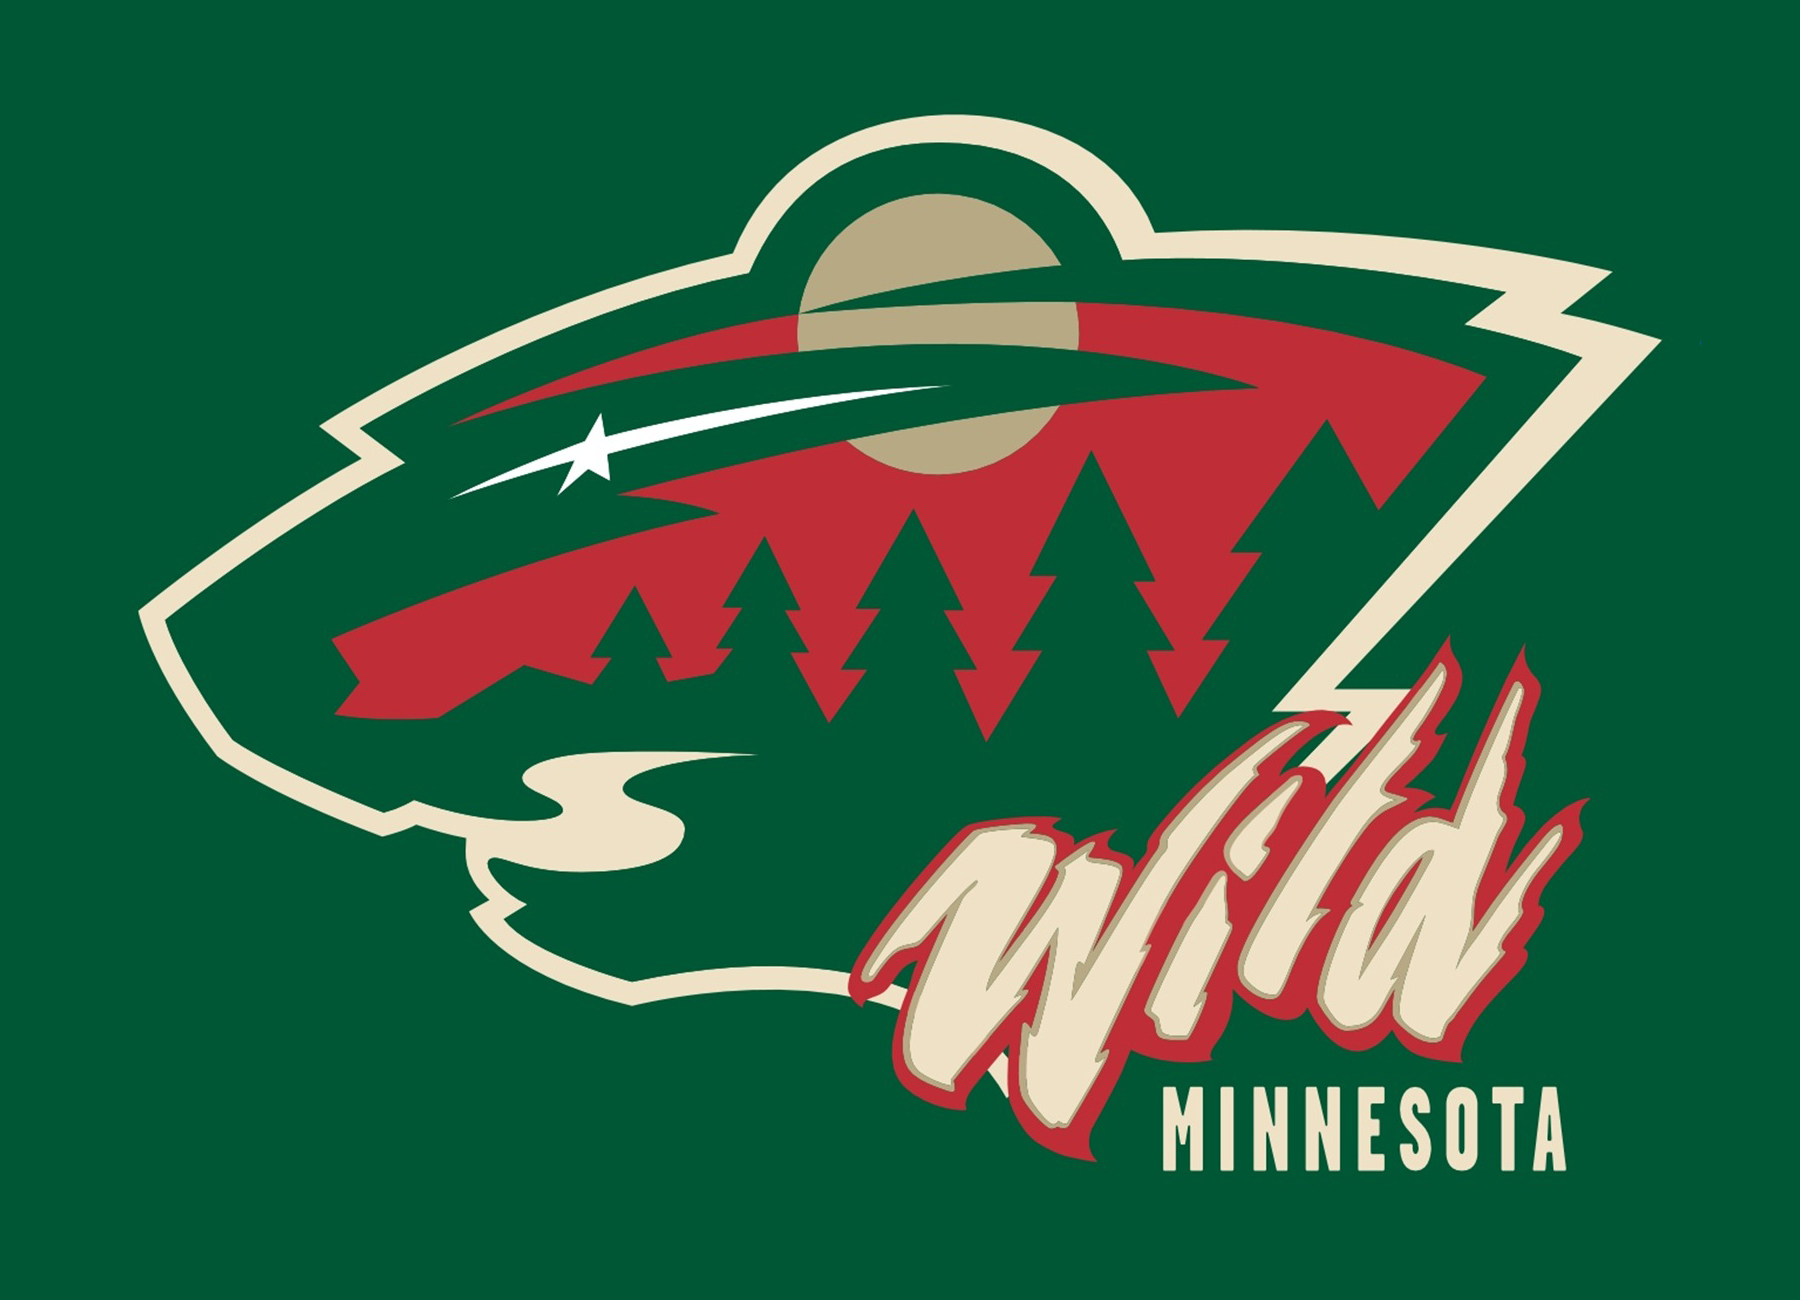 Minnesota wild logo minnesota wild symbol meaning history and evolution - Minnesota wild logo ...